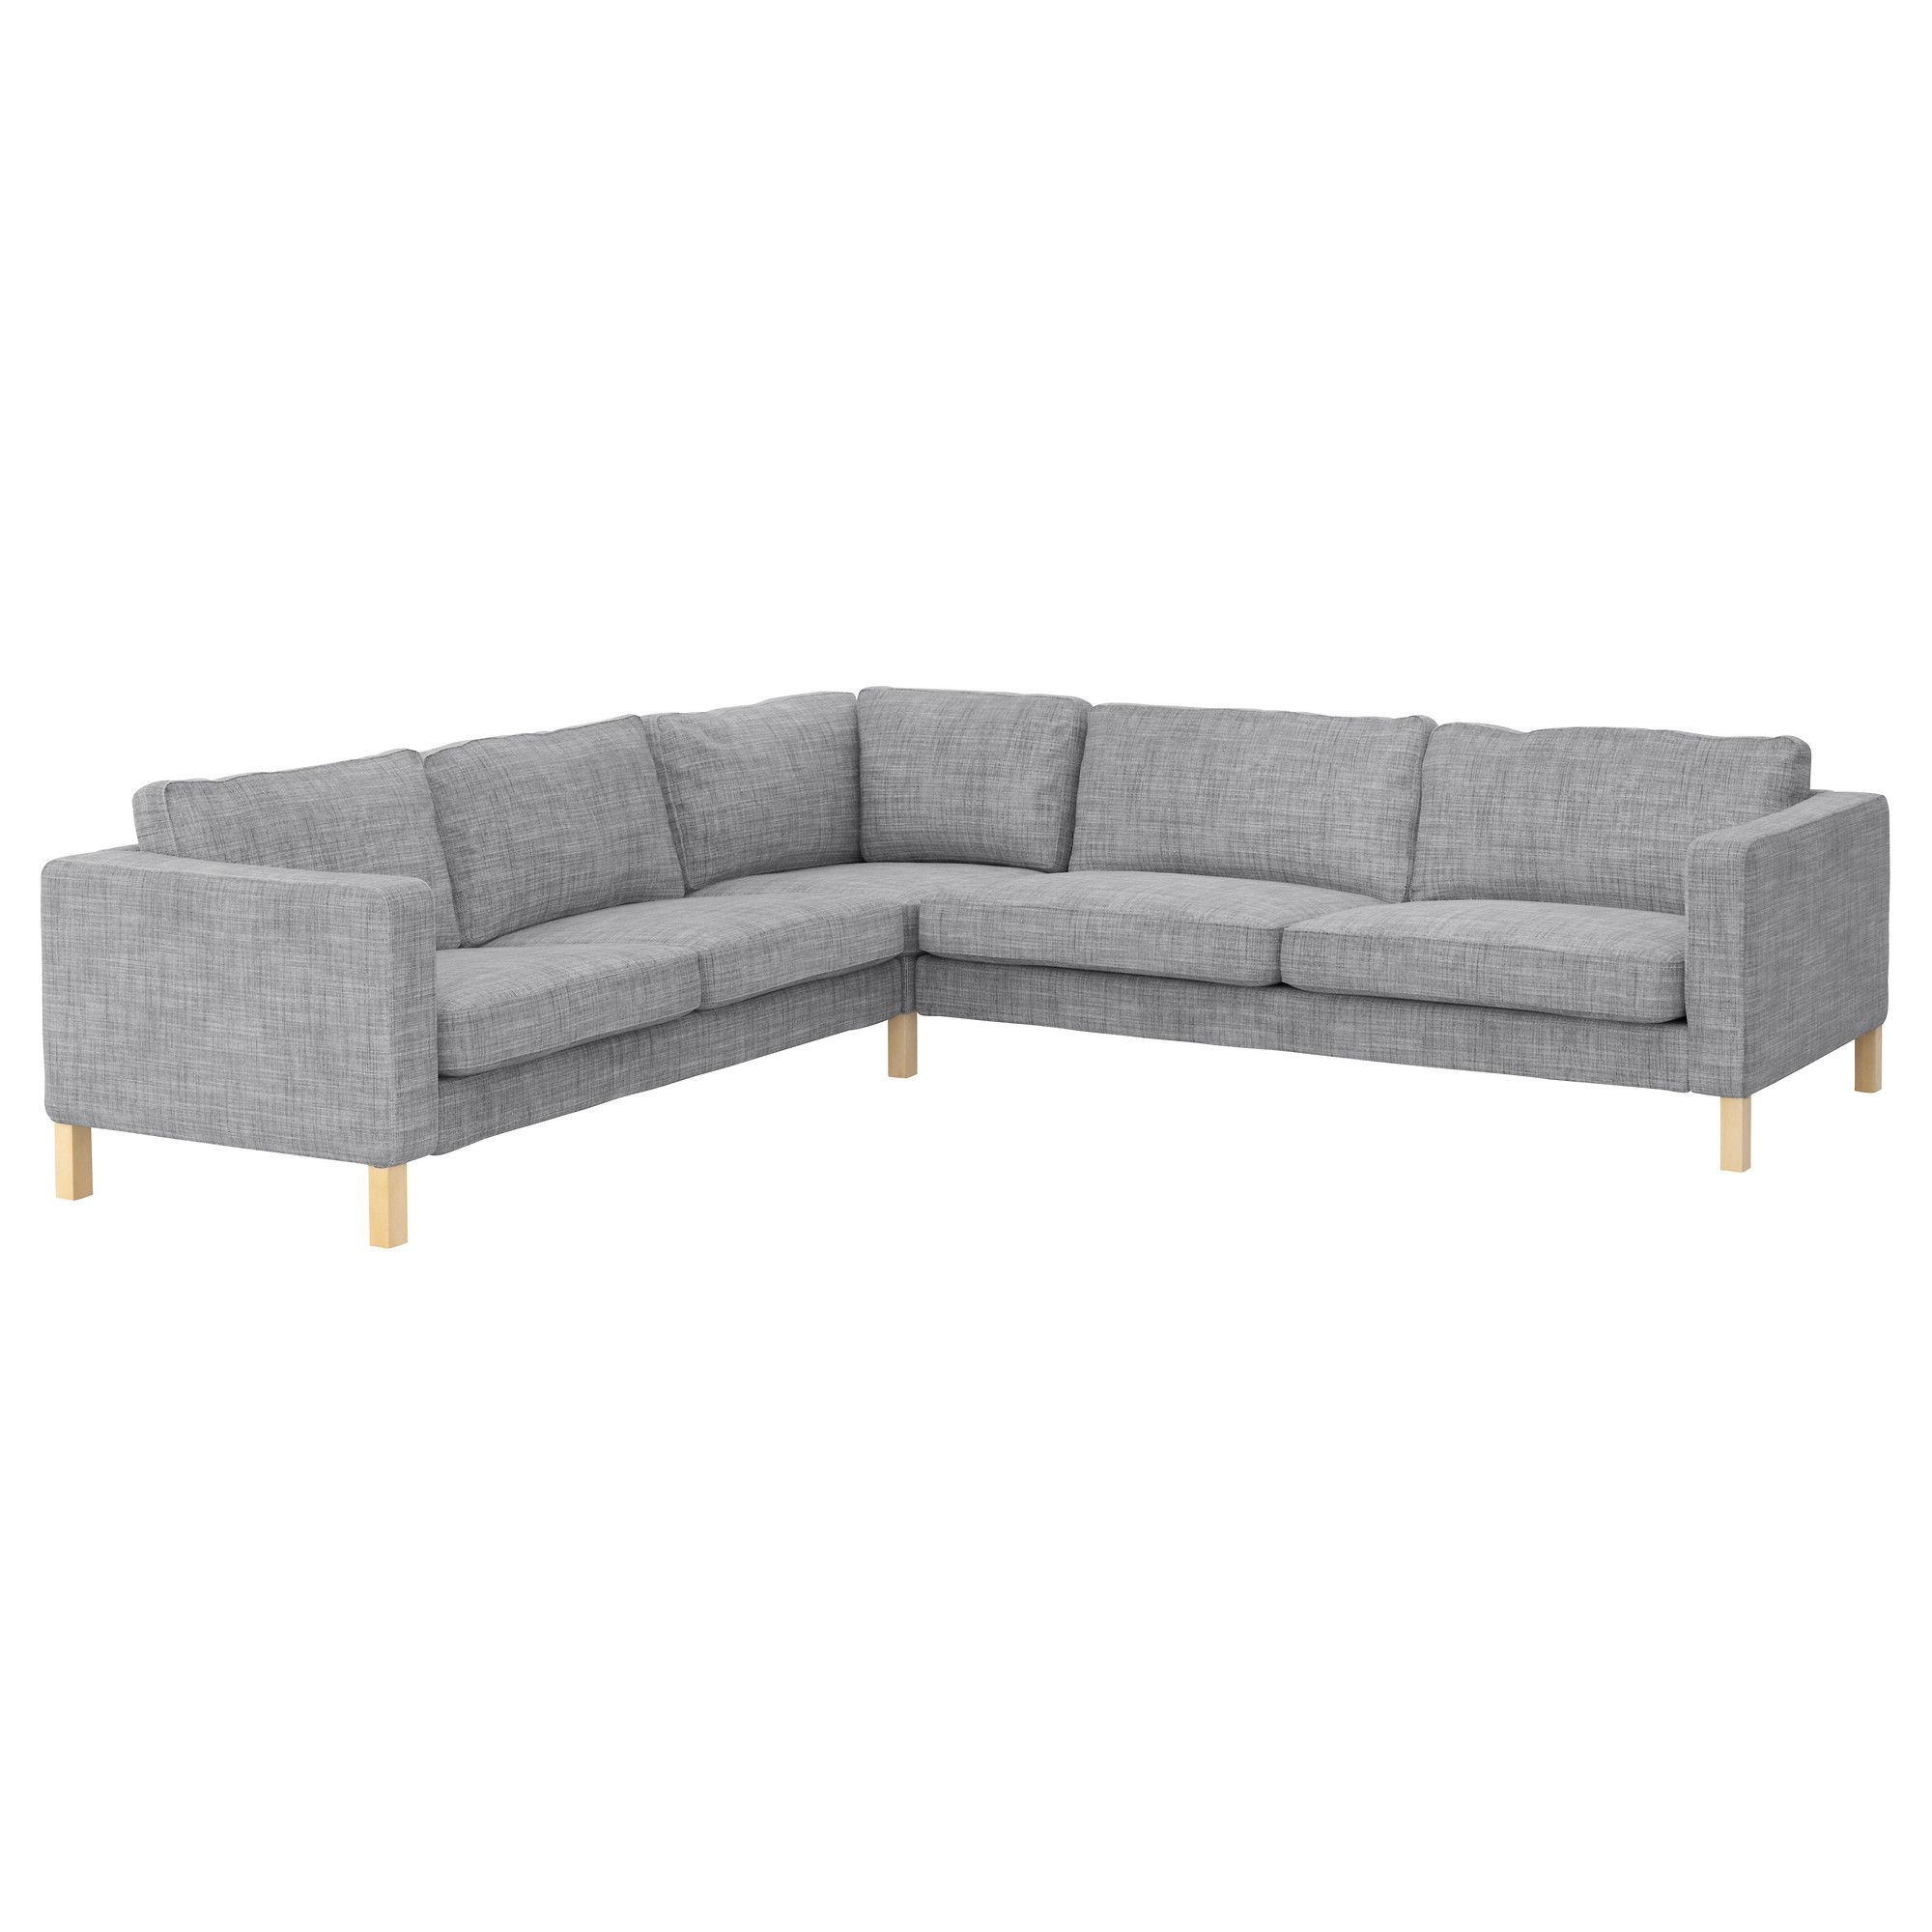 Couch Ikea Karlstad Corner Sofa 2 3 3 2 Isunda Gray Ikea For Our Home